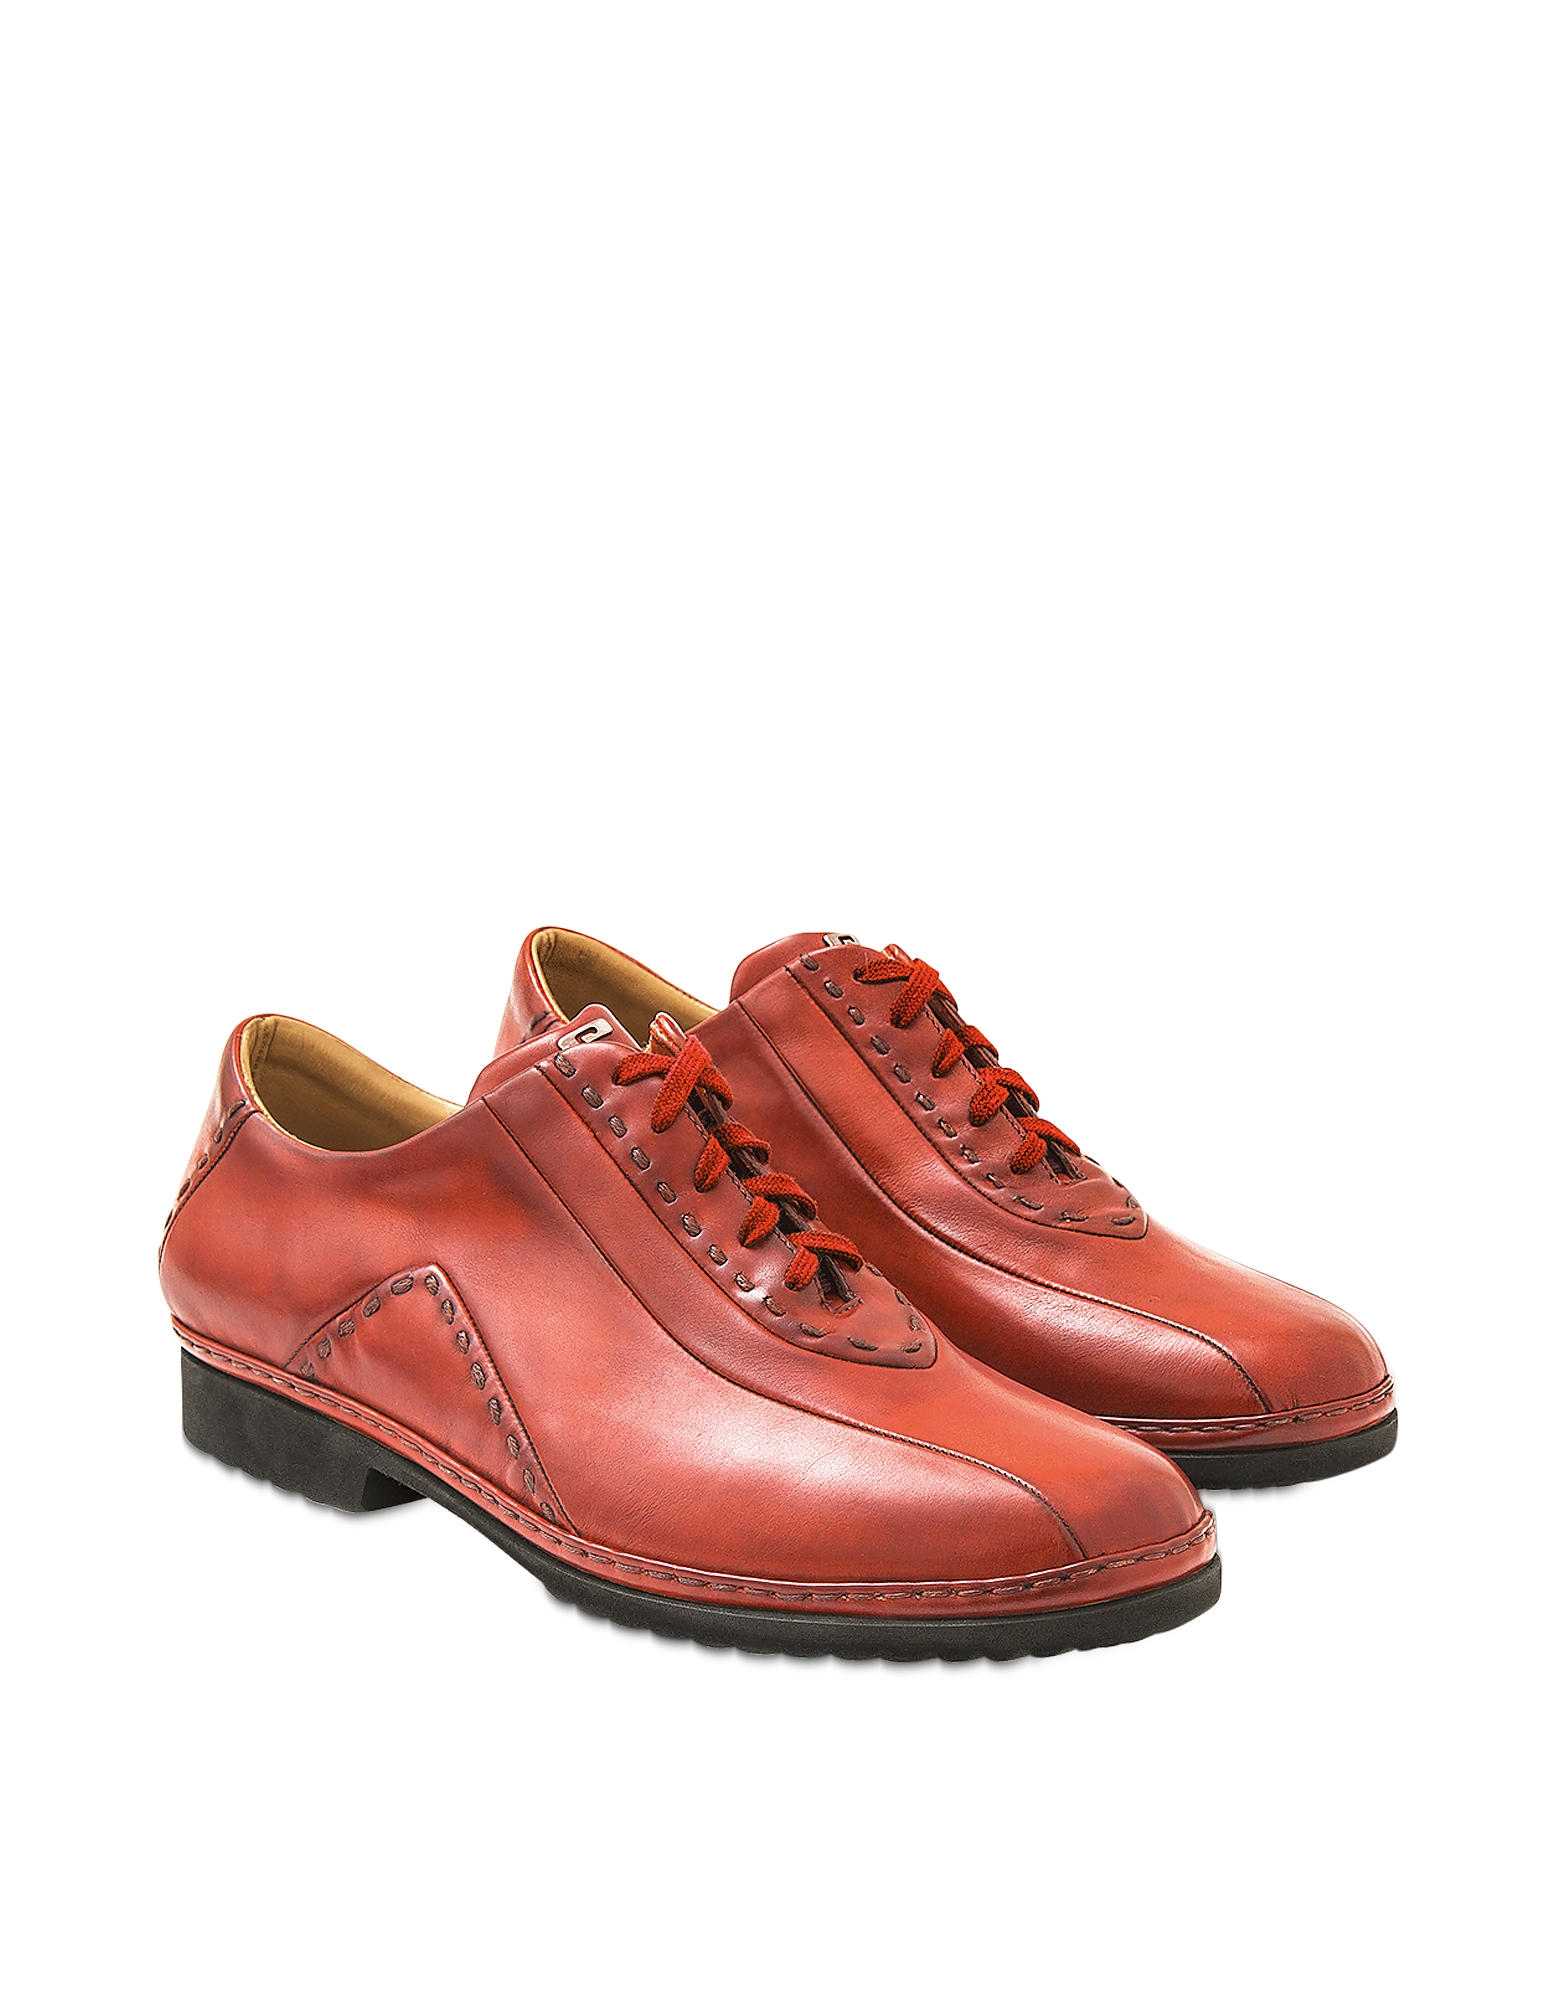 Red Italian Hand Made Calf Leather Lace-up Shoes